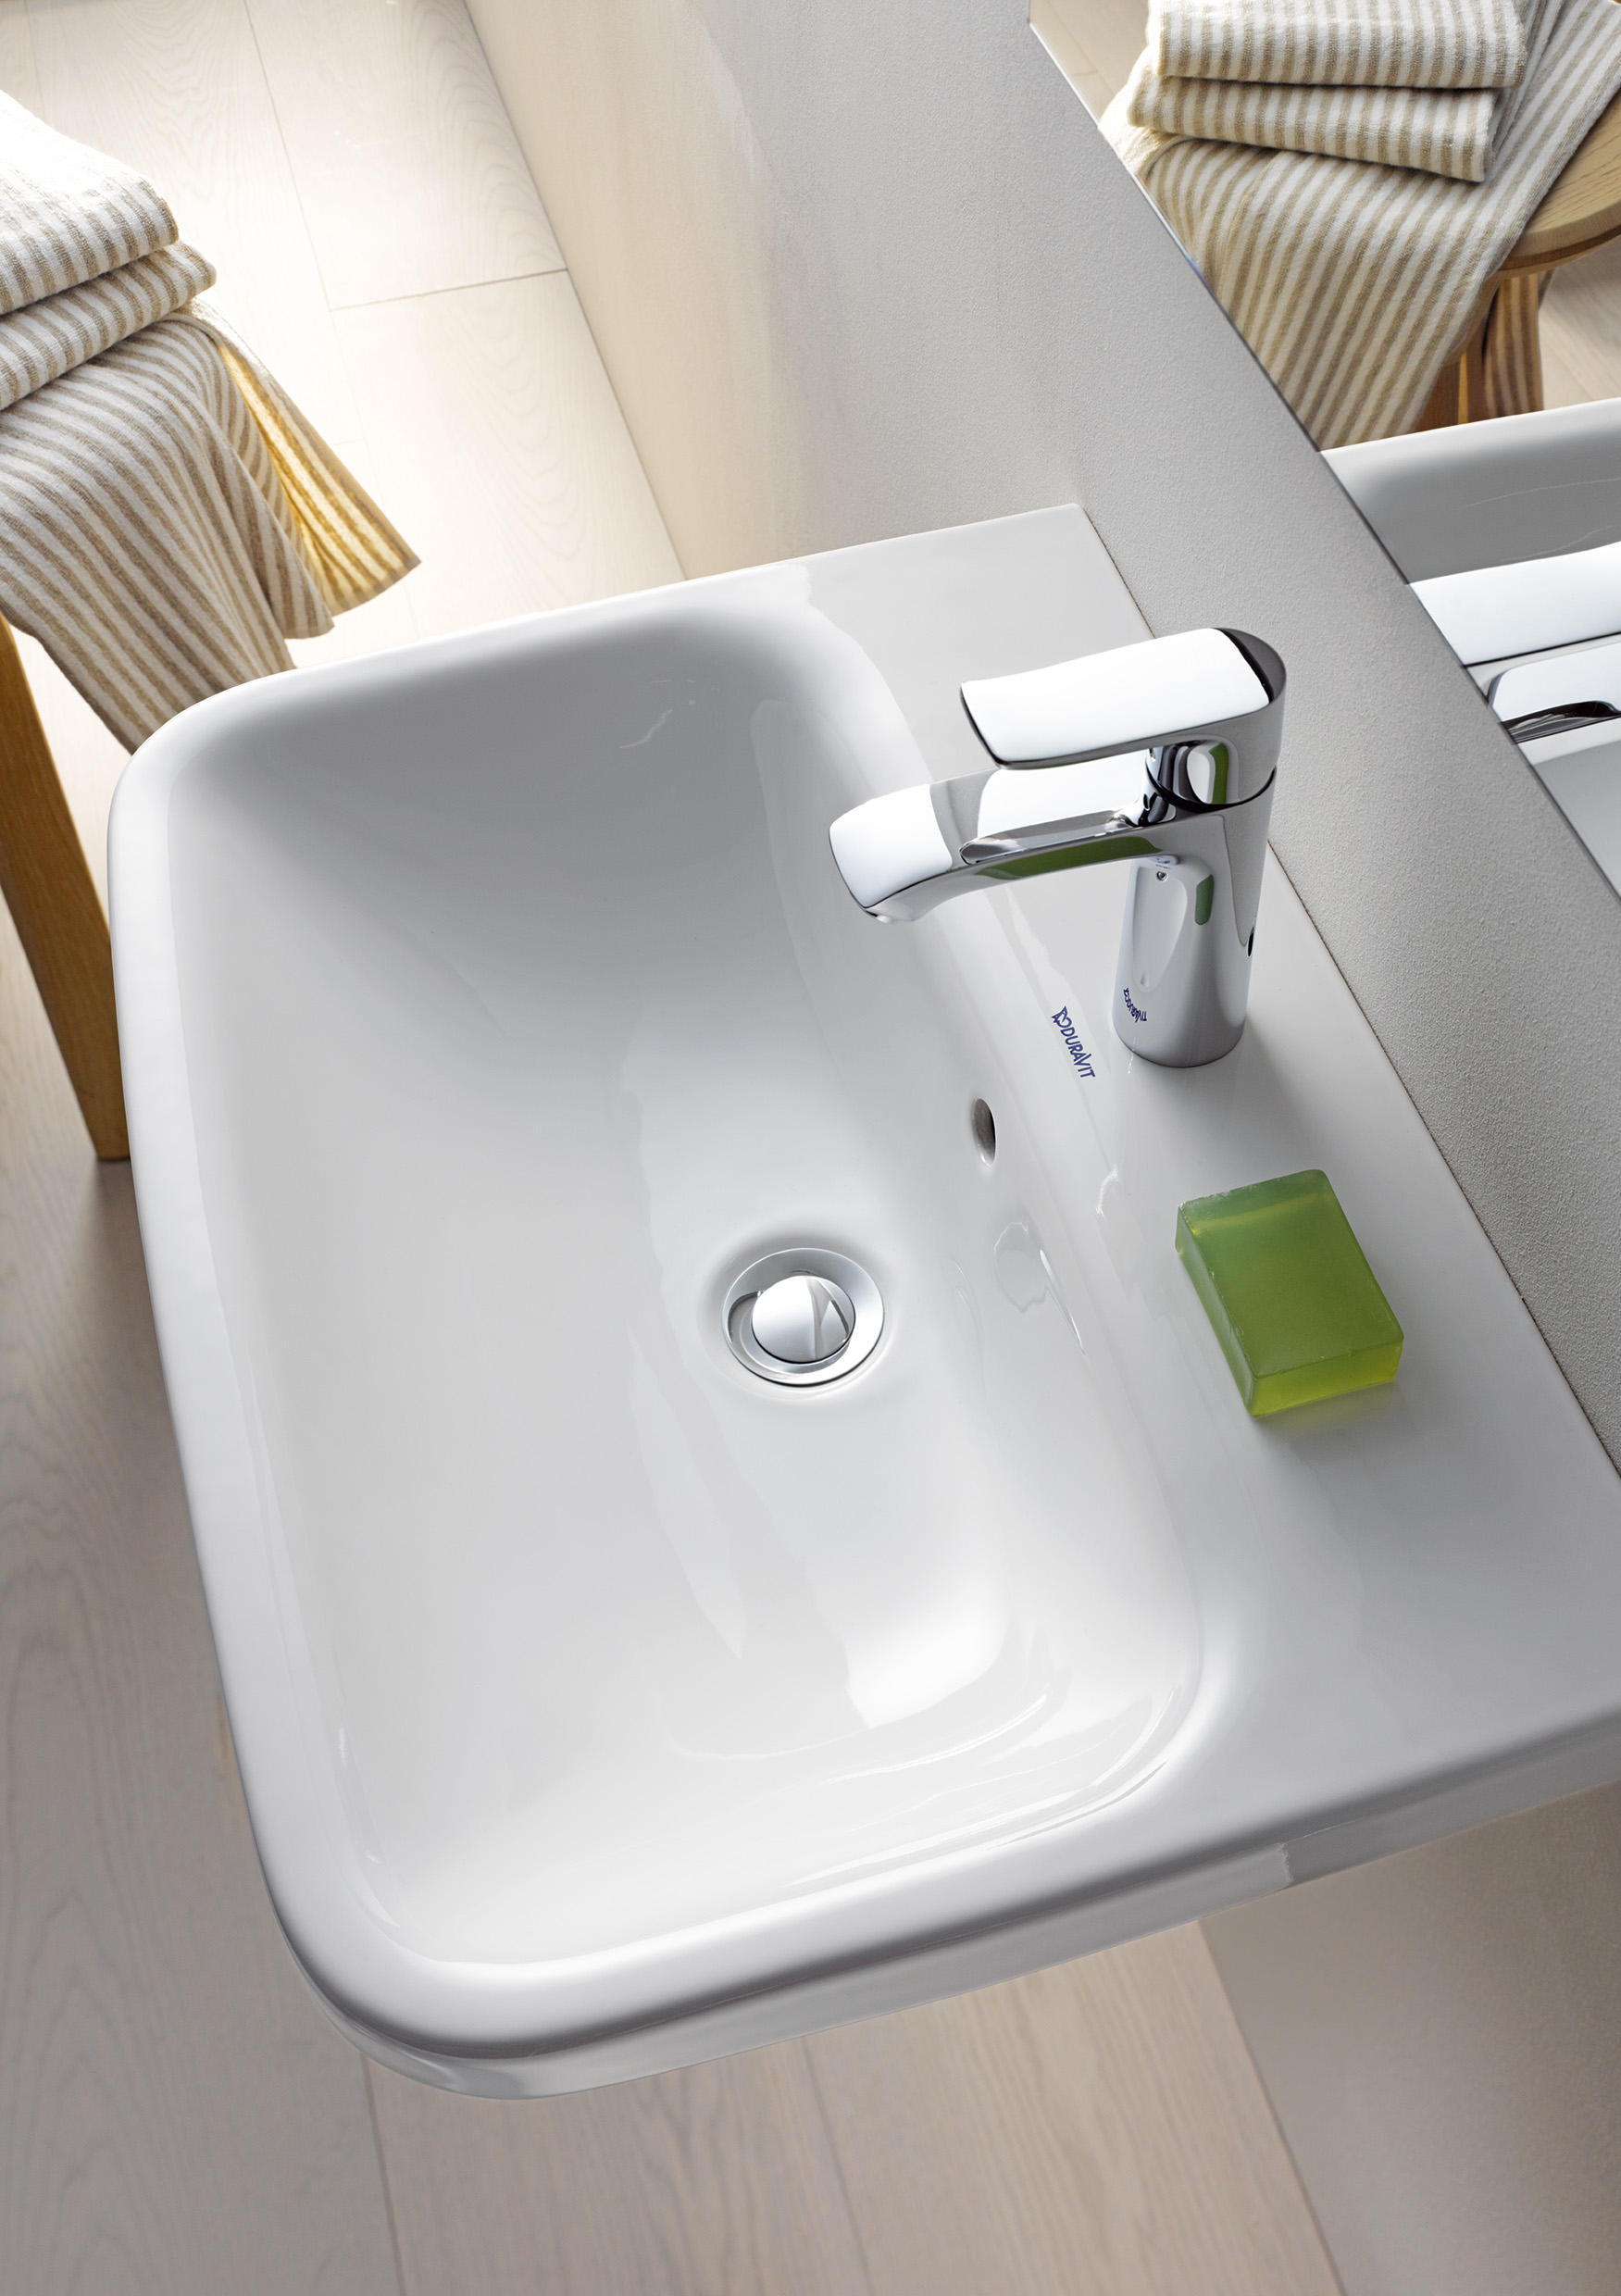 DURASTYLE ABOVE COUNTER BASIN Wash Basins From DURAVIT